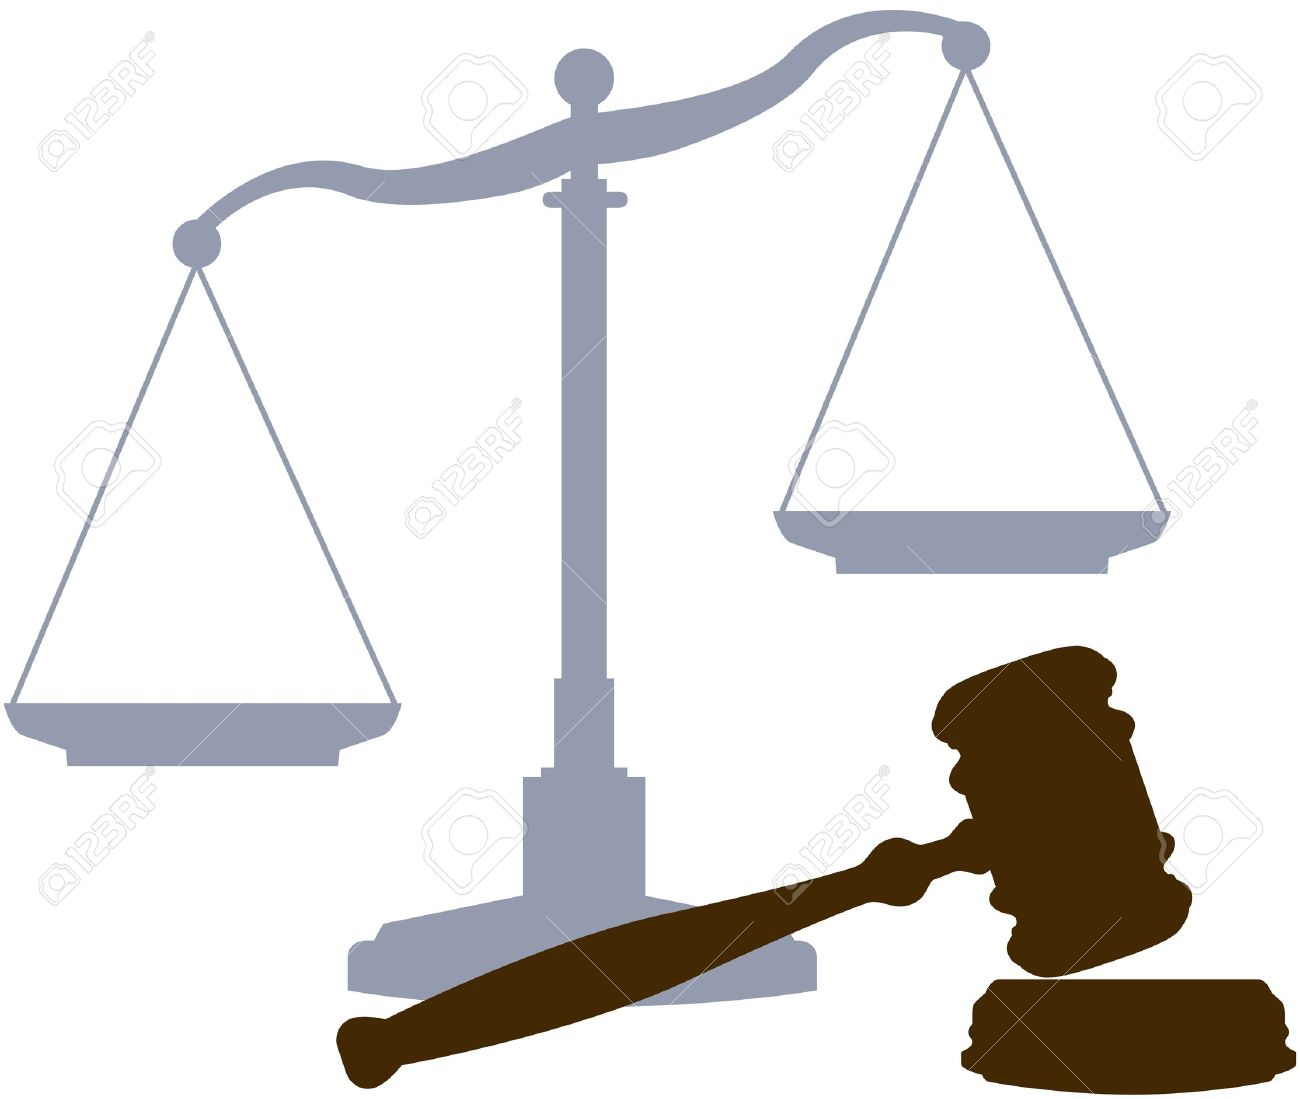 Justice scales clipart free download best justice scales clipart 1300x1099 scales and gavel as symbols of the law lawyers and the legal buycottarizona